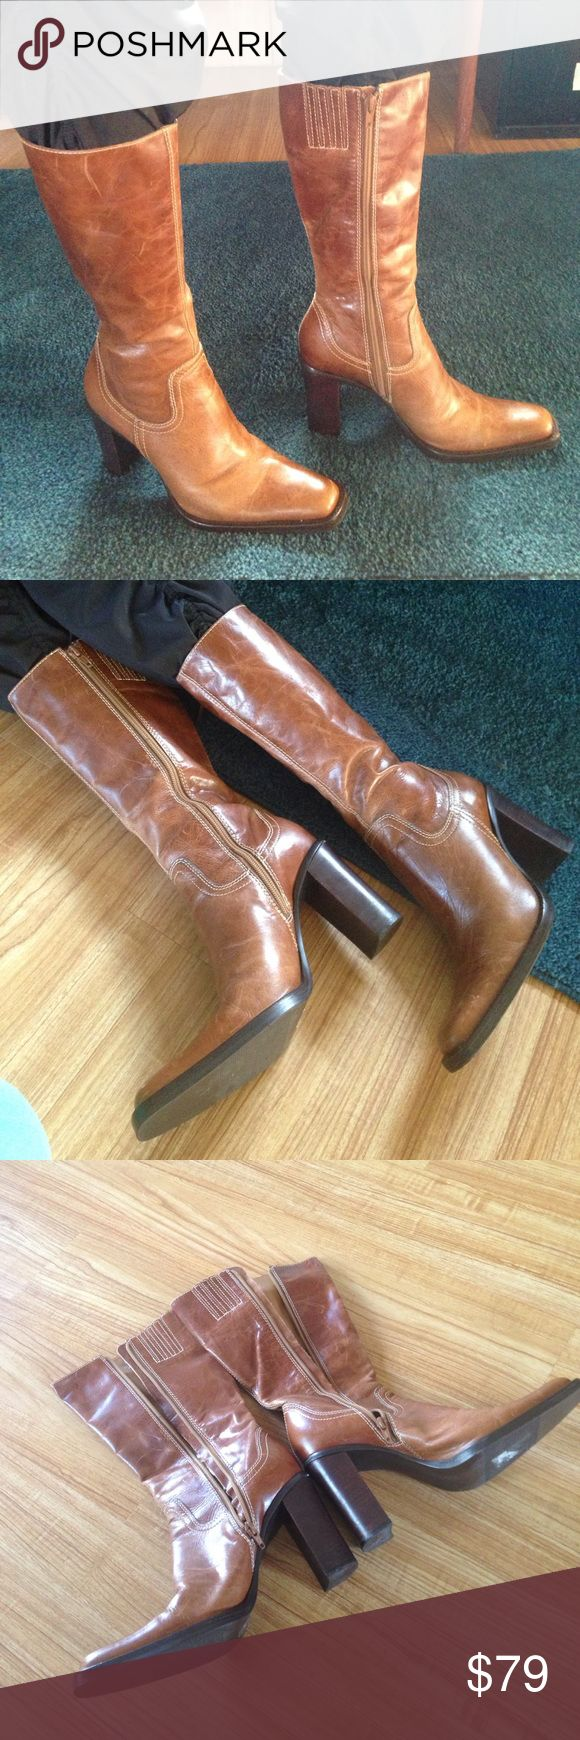 Sale Today -Steve Madden Worn in great condition True to size.Price Is Firm Steve Madden Shoes Heeled Boots